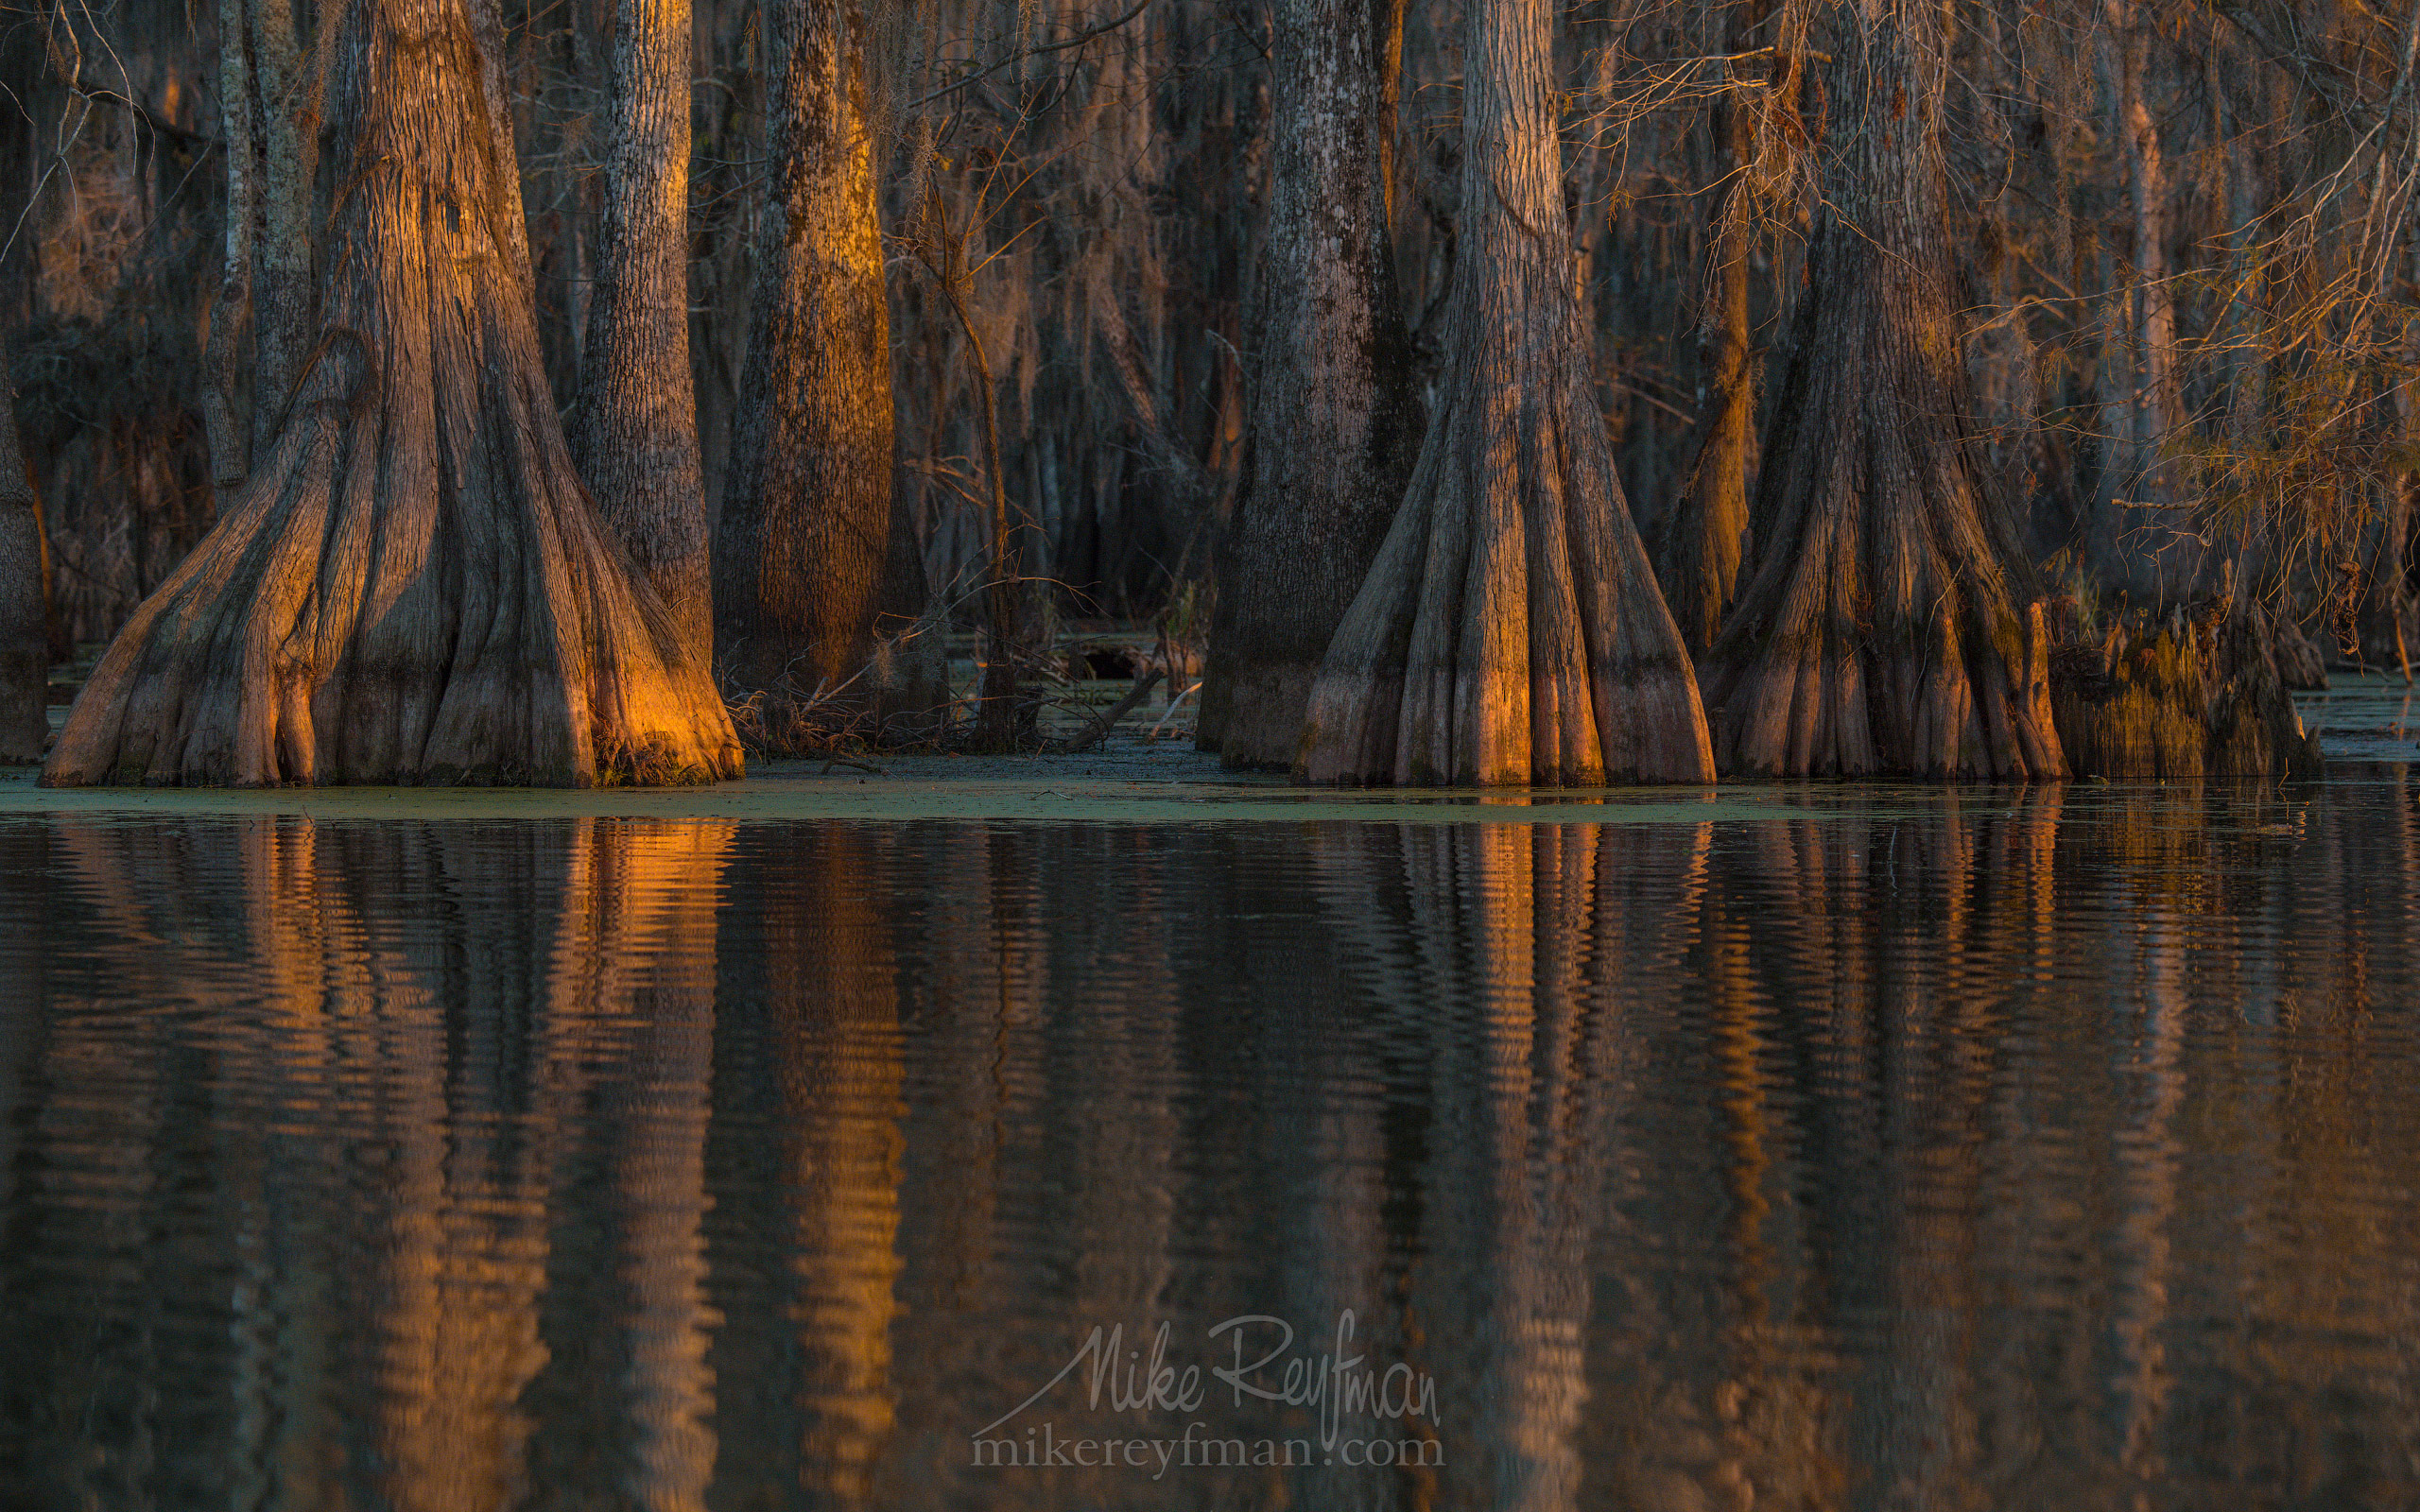 Buttressed trunks of Bald Cypress and Tupelo trees reflecting in the water. Lake Martin, Louisiana, US 076-LT1-50A4177.jpg - Bold Cypress and Tupelo Trees in the swamps of Atchafalaya River Basin. Caddo, Martin and Fousse Lakes. Texas/Louisiana, USA. - Mike Reyfman Photography